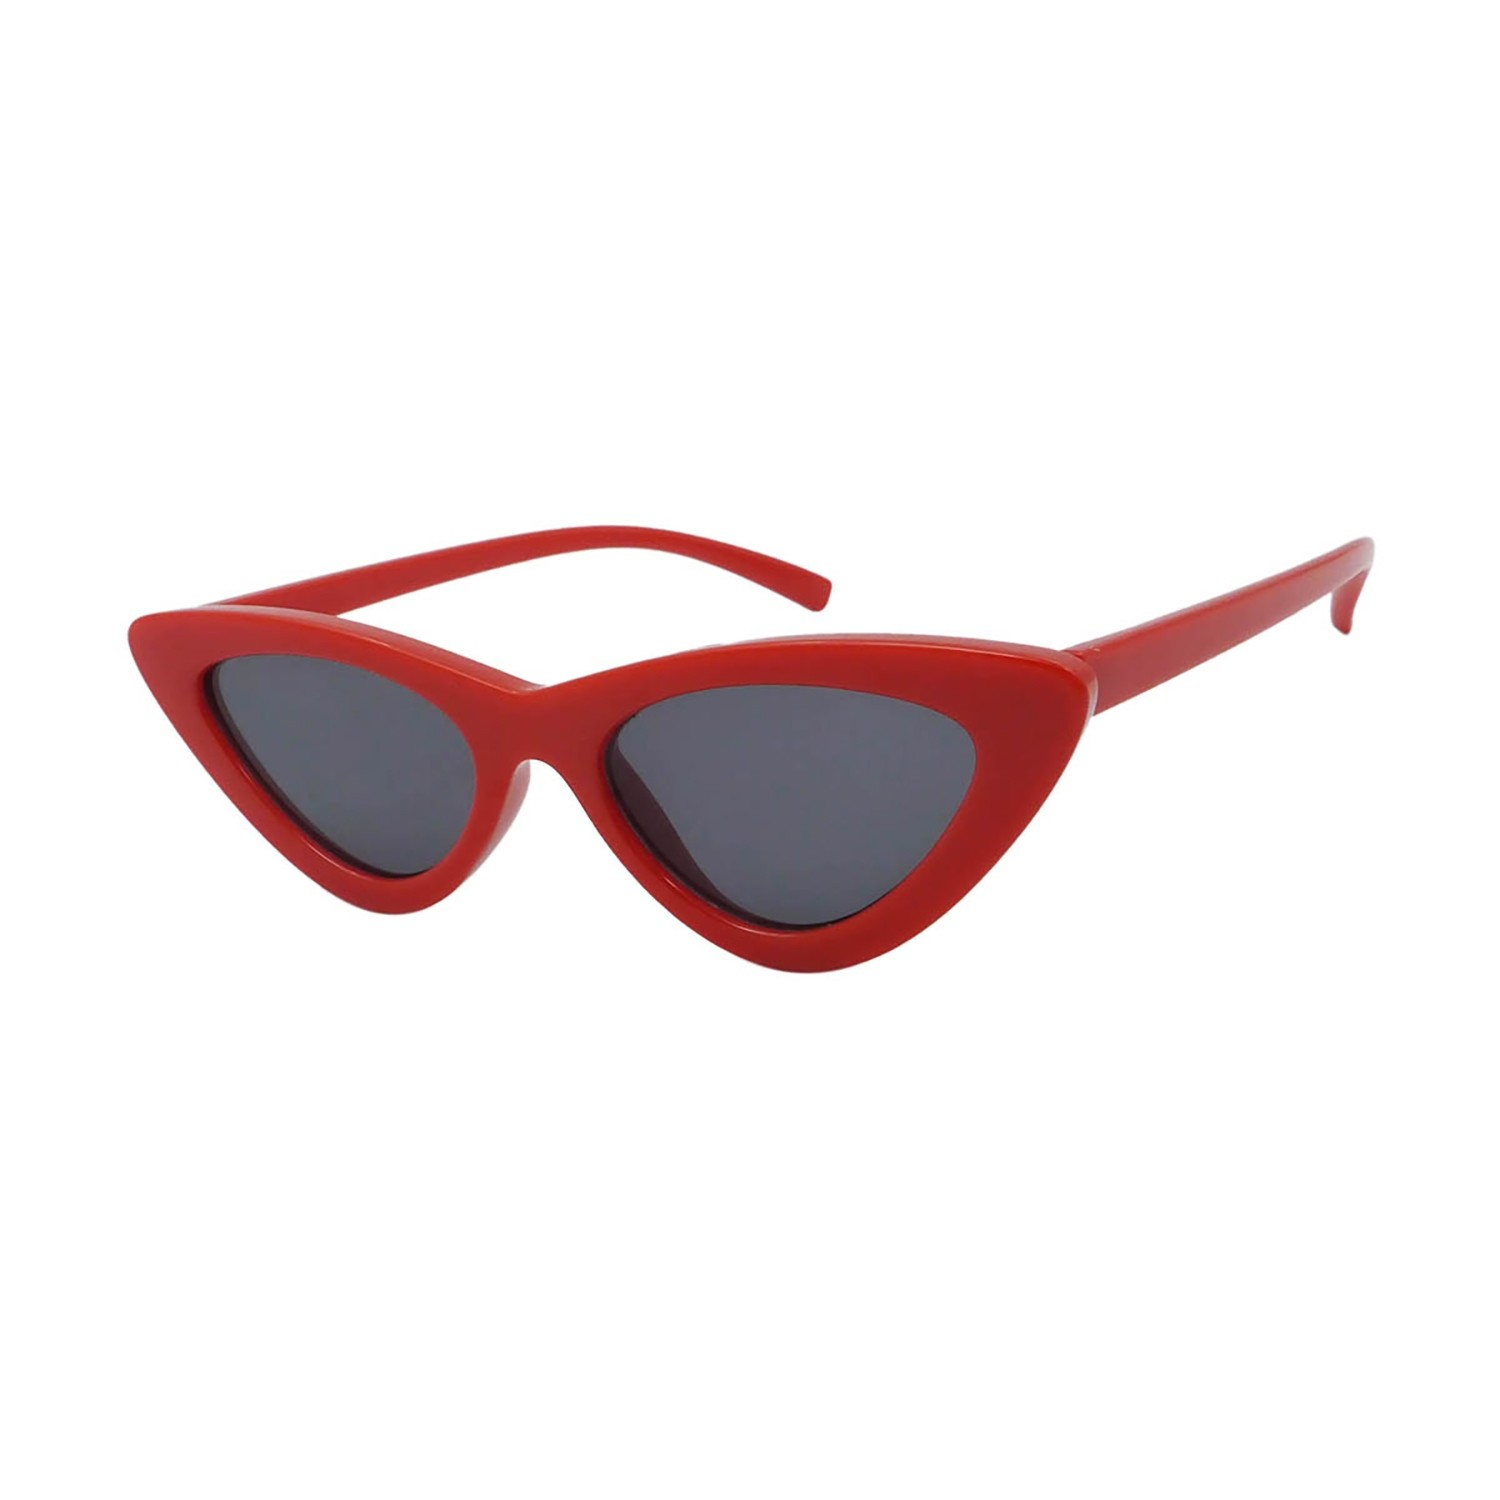 LOLITA SHAPE POLYCARBONATE RED